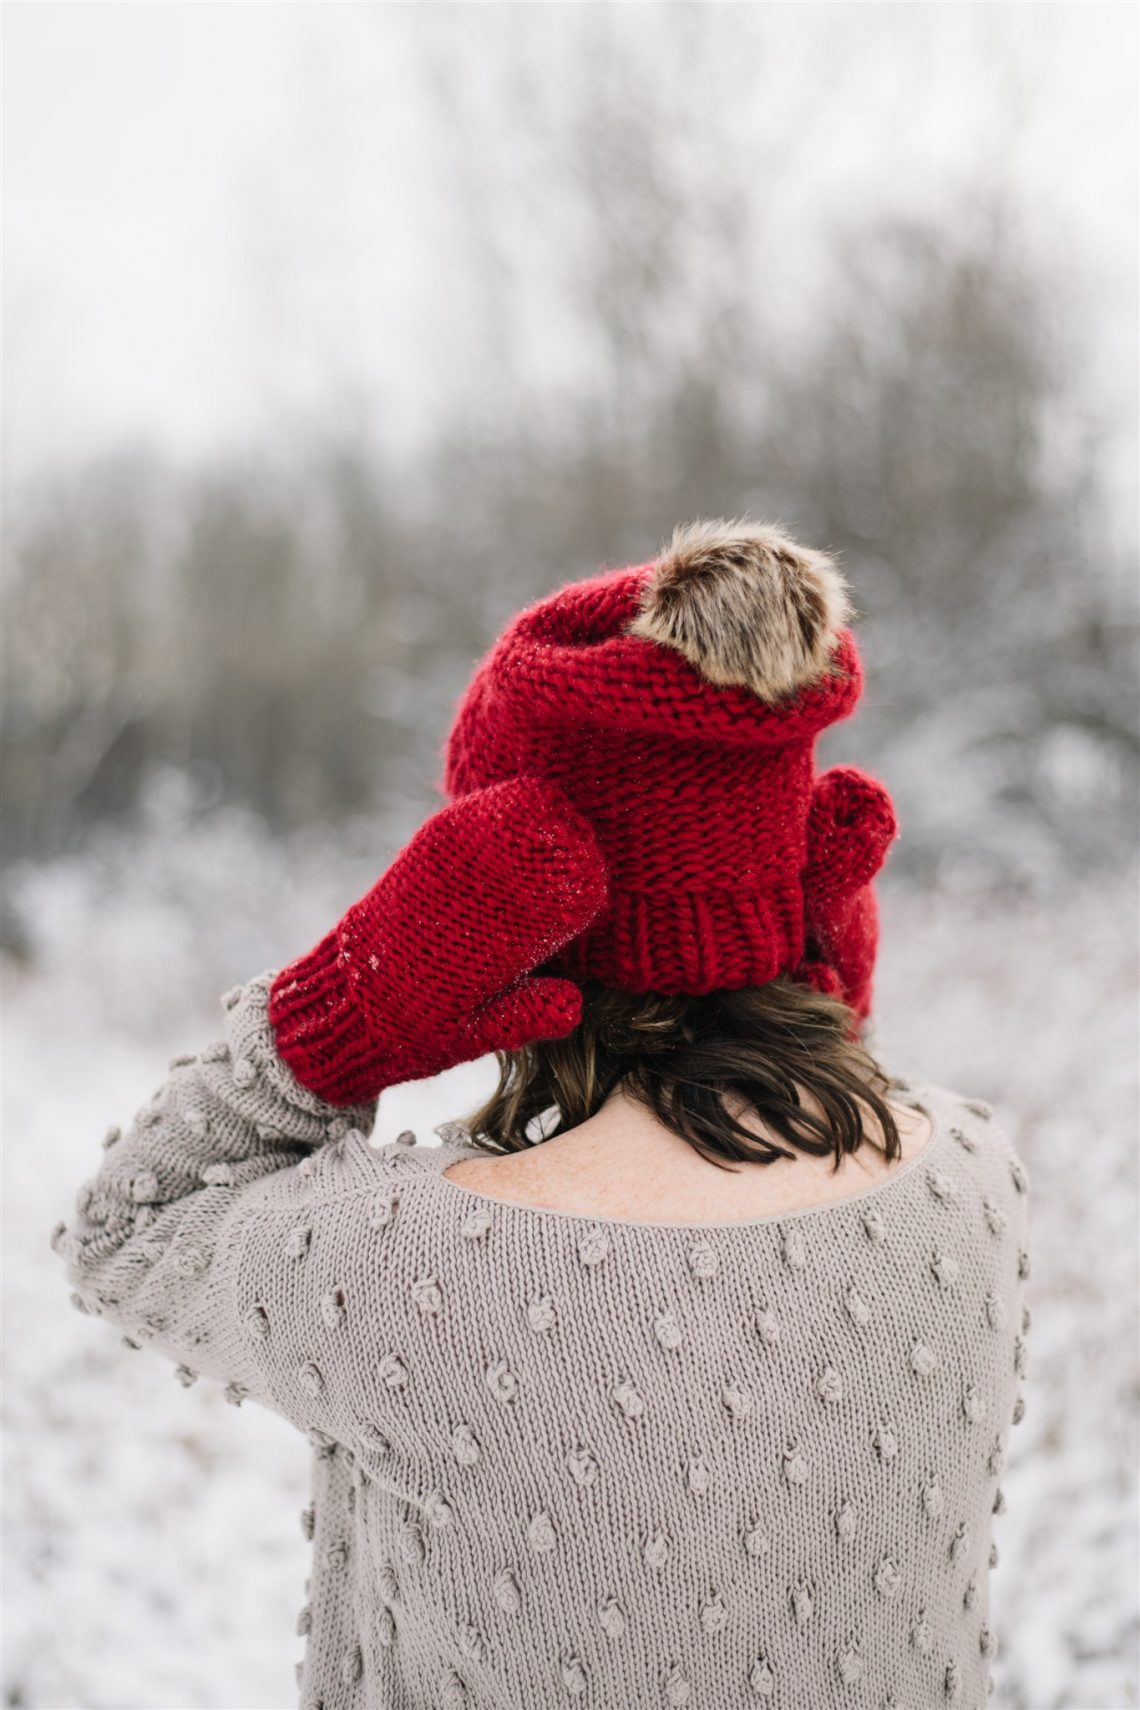 Free Knitting Pattern! This chunky knit hat and mittens is quick to make and would be a beautiful Christmas gift